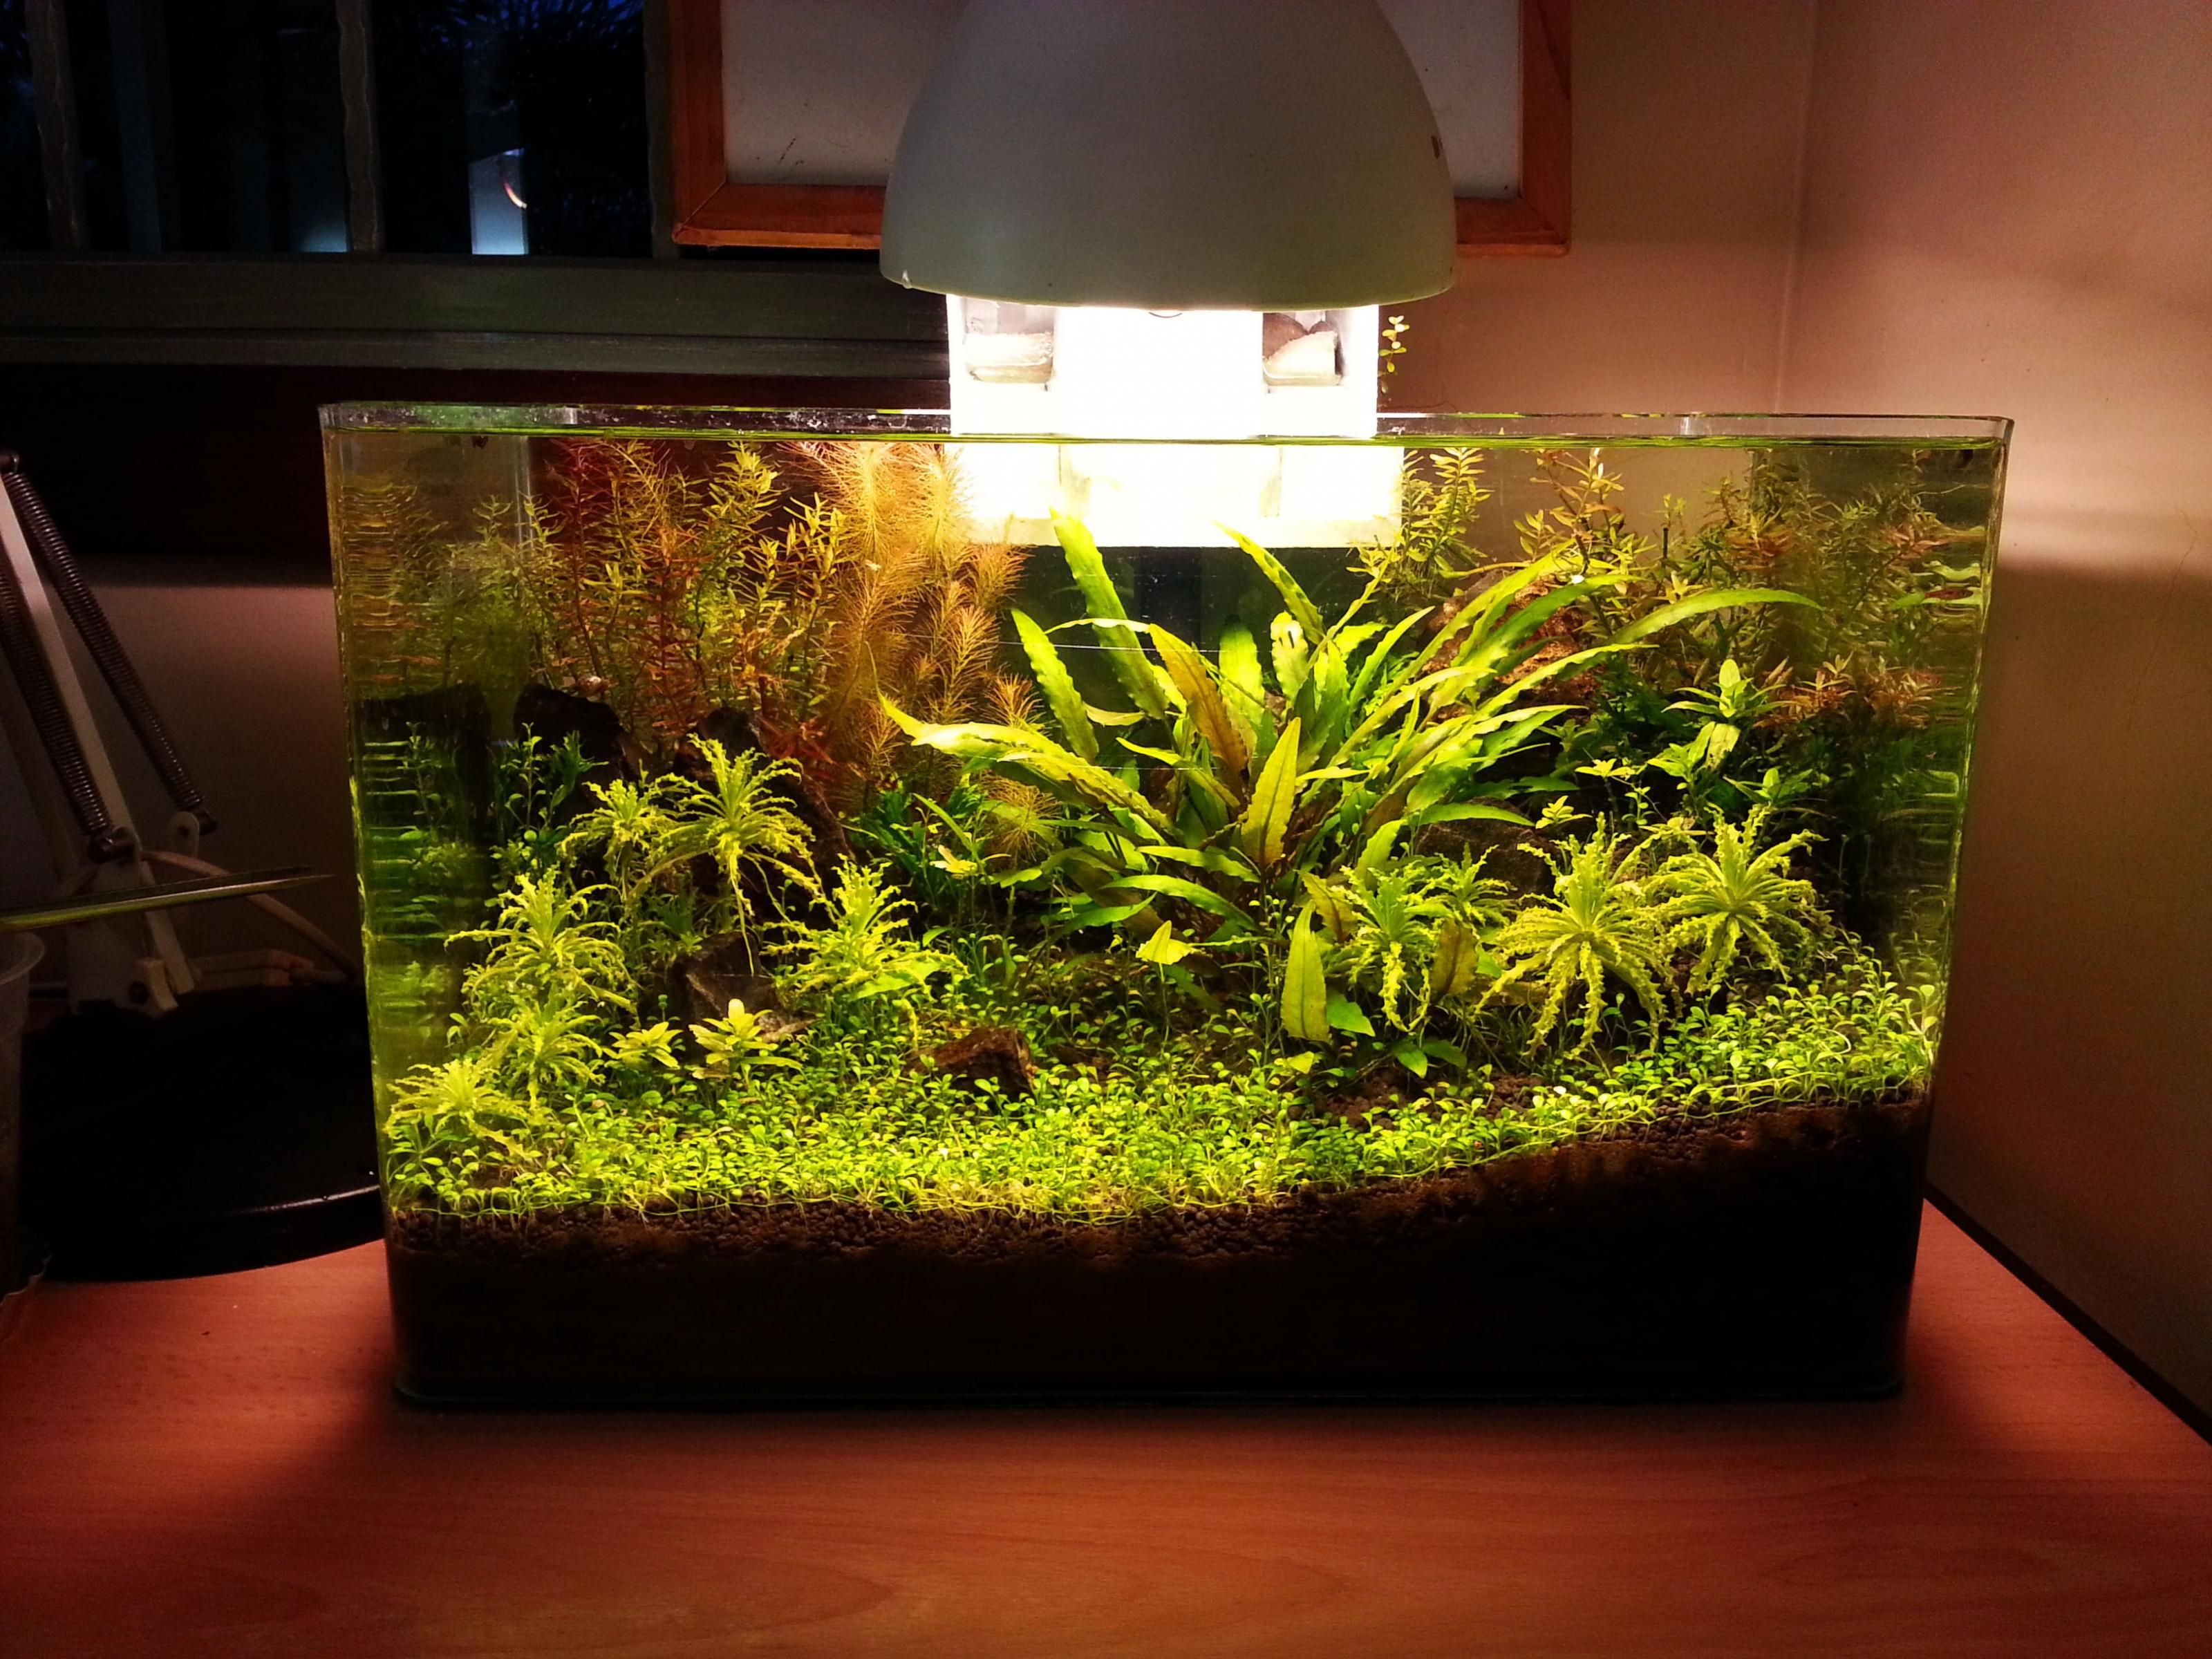 Freshwater aquarium fish no heater - Here Is My First Tank That I Started A Few Months Ago Its All Low Tech Except For Excel Dosing I Just Have Some Basic Low Light Plants Like Wistera